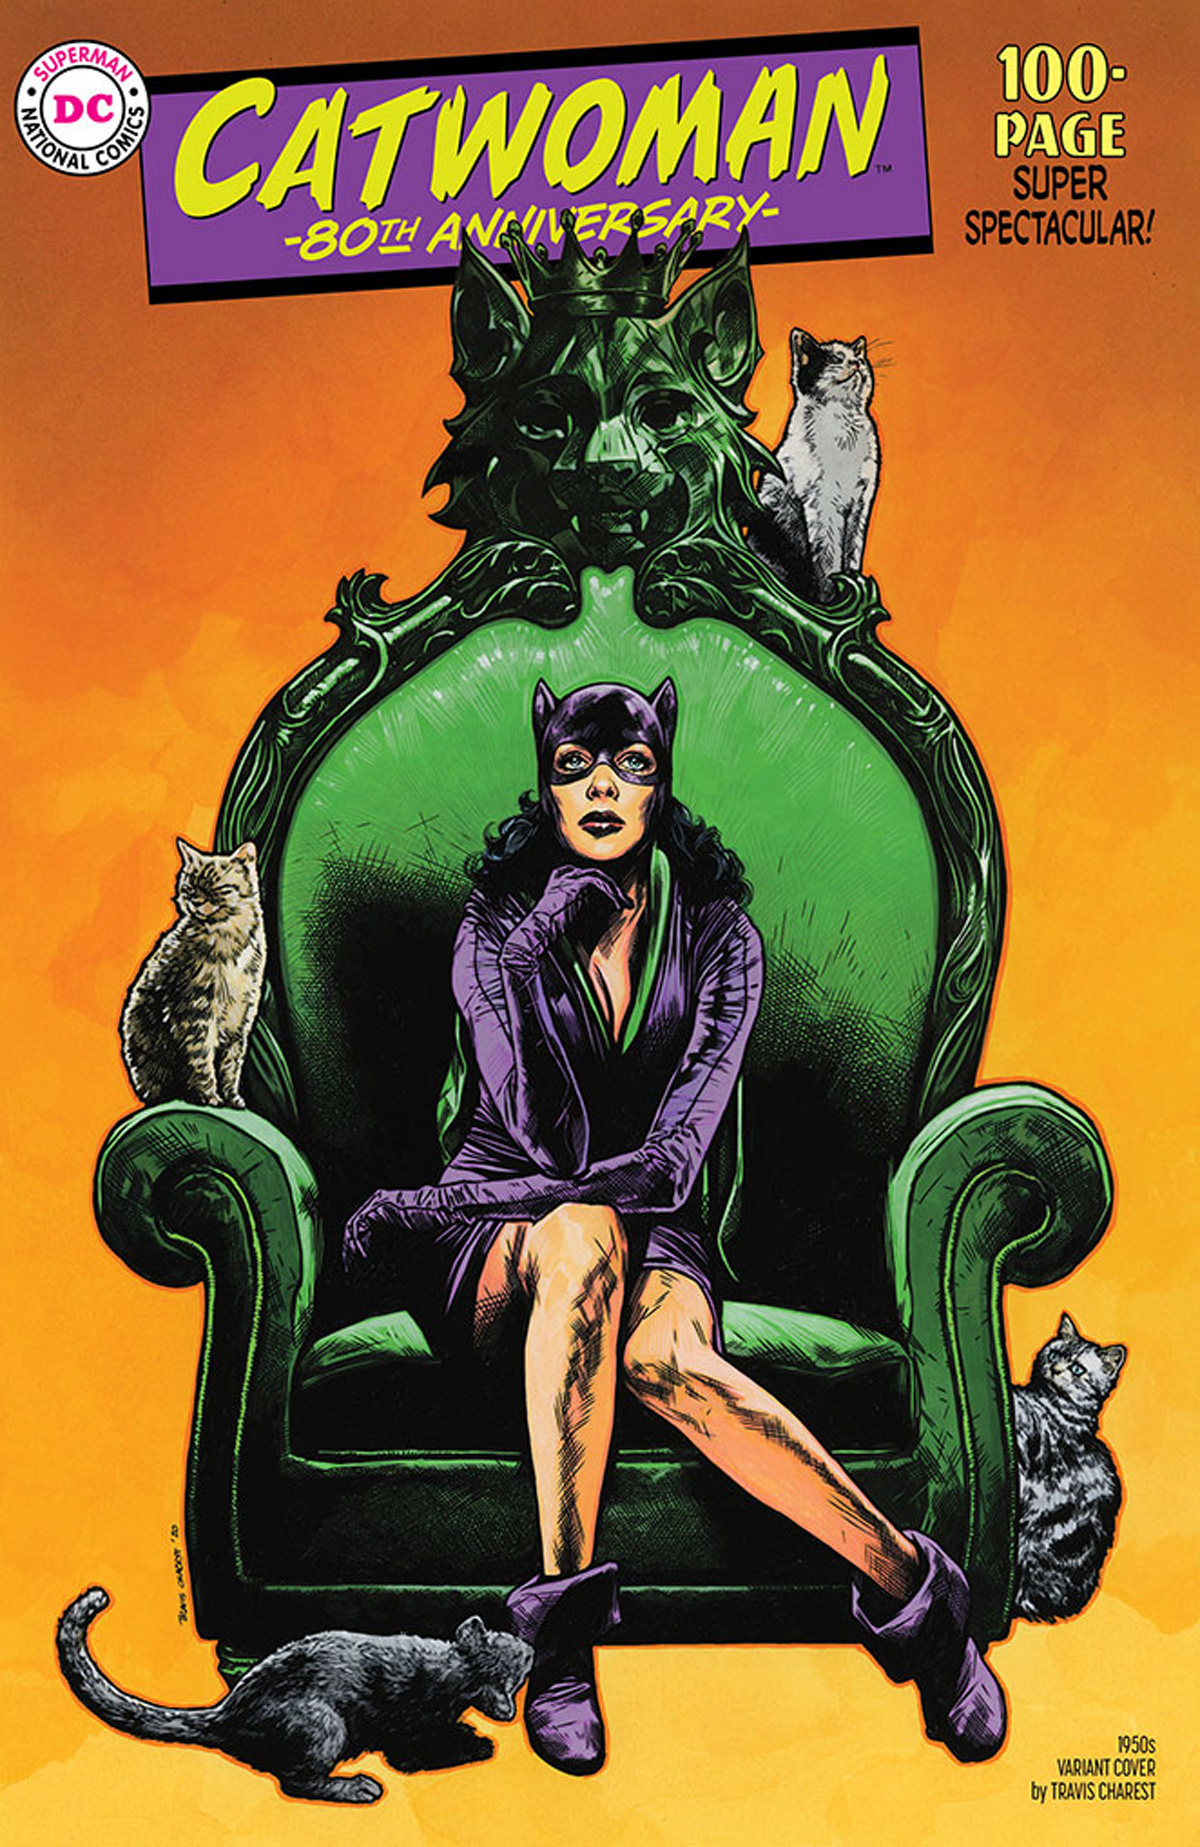 Catwoman 80th Anniversary 100-Page Super Spectacular #1 Cover C Variant Travis Charest 1950s Cover